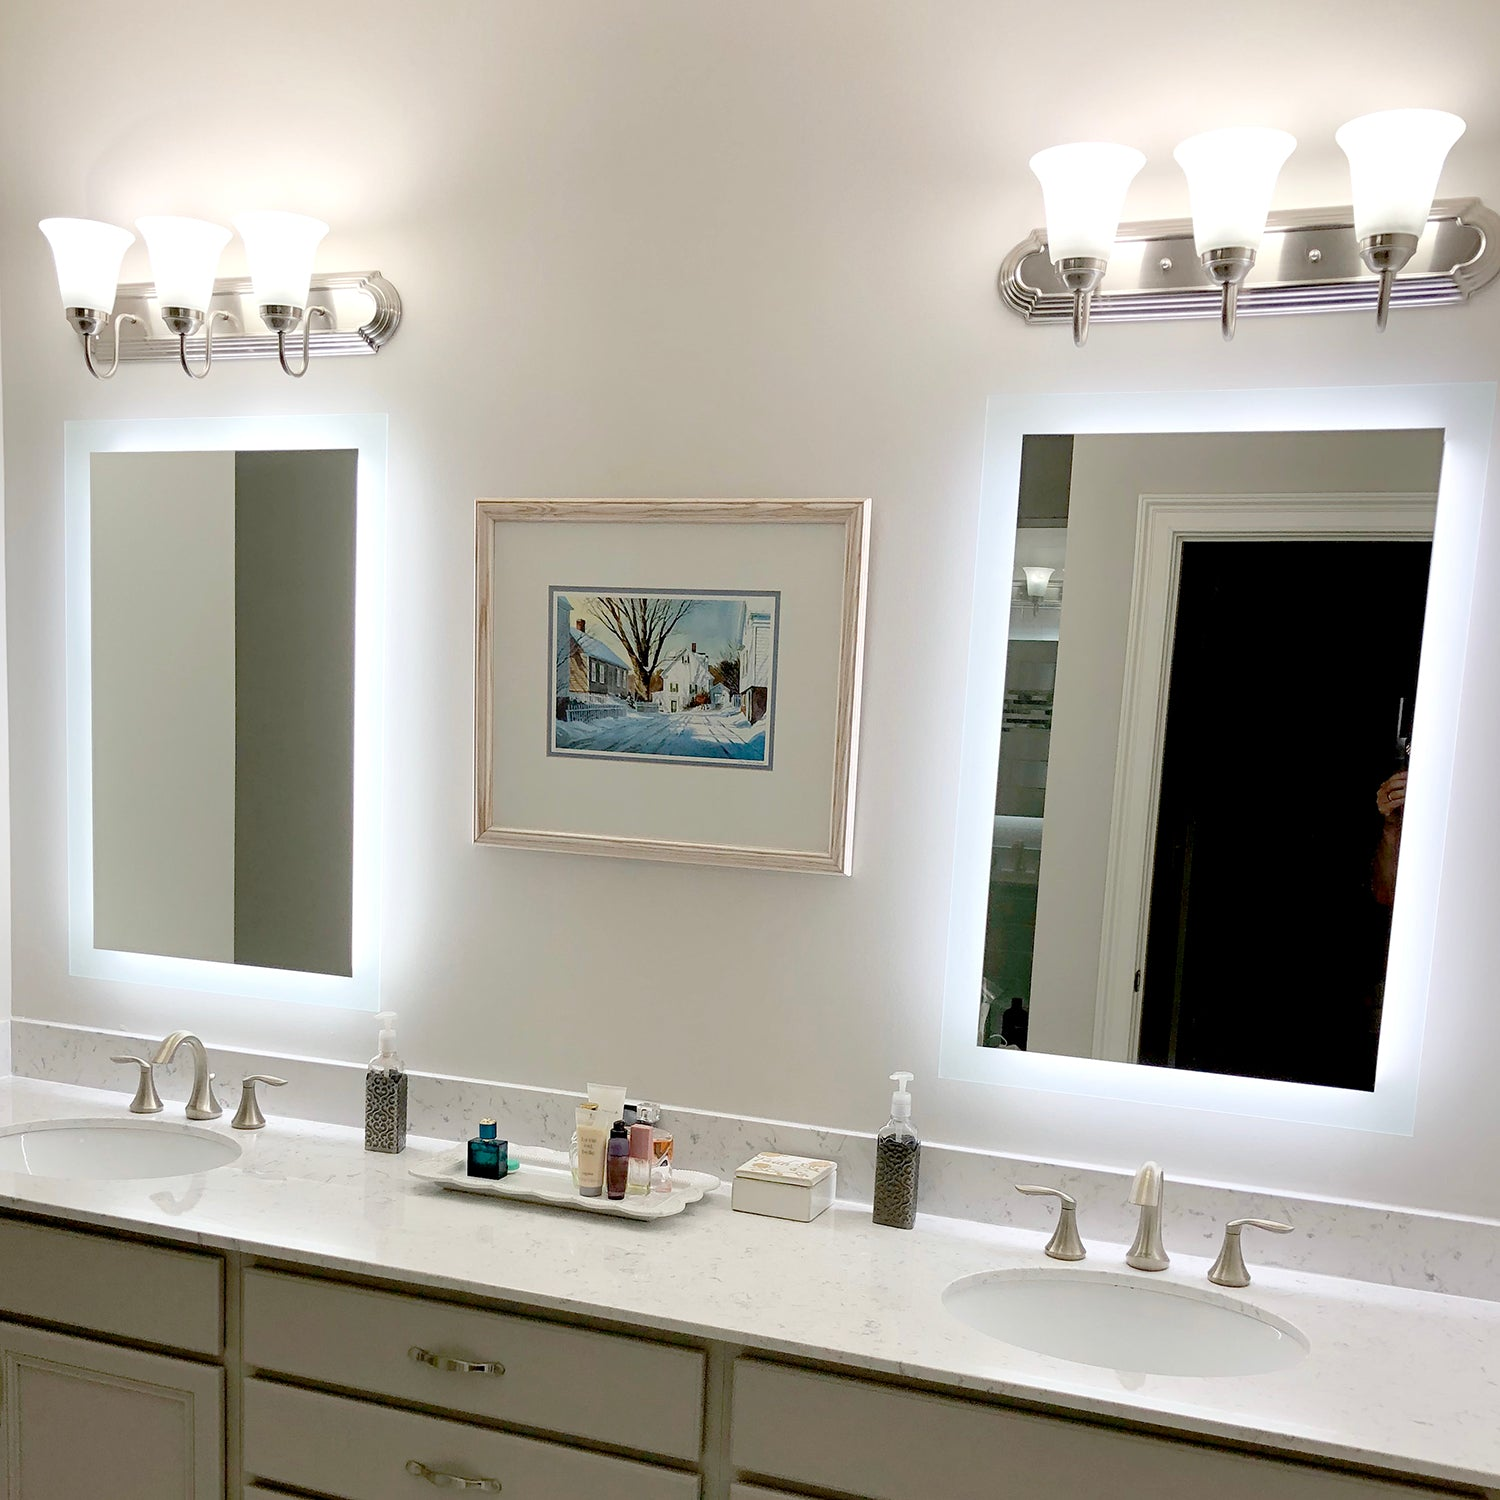 Side Lighted Led Bathroom Vanity Mirror 28 X 36 Rectangular Mirrors Marble